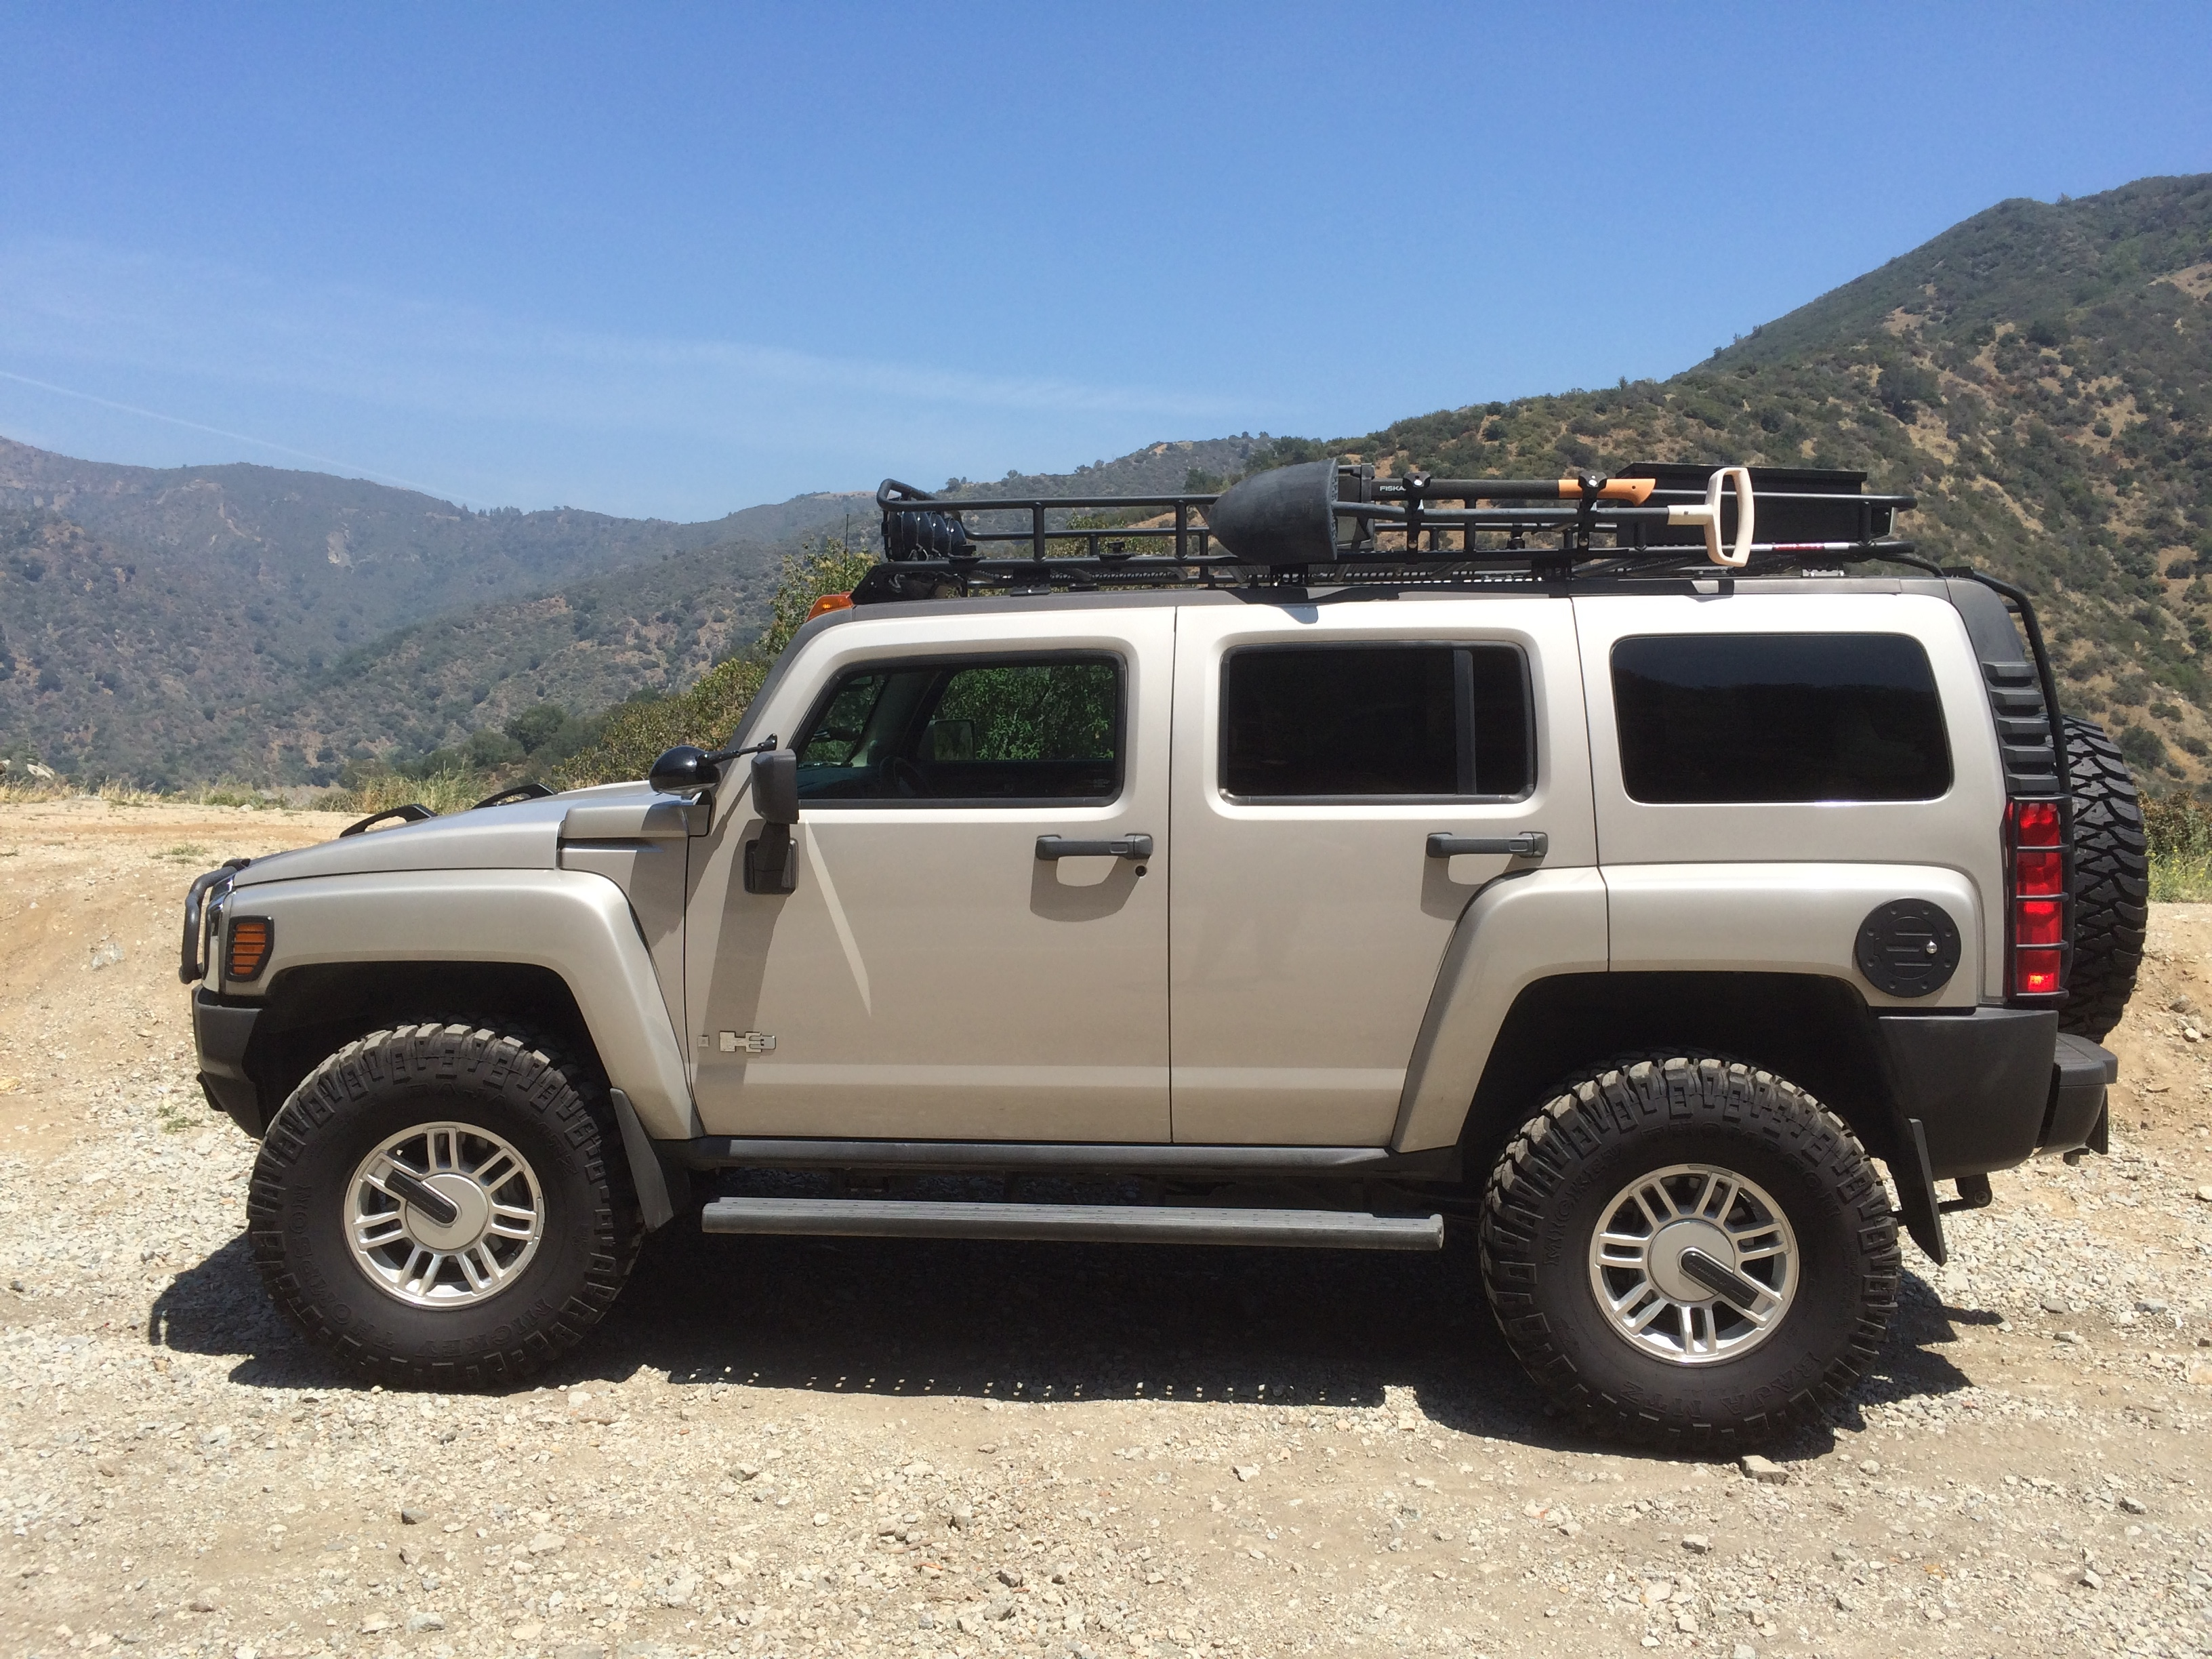 2006 Hummer H3 Adventure Package with RunCool Hood Louvers Hood